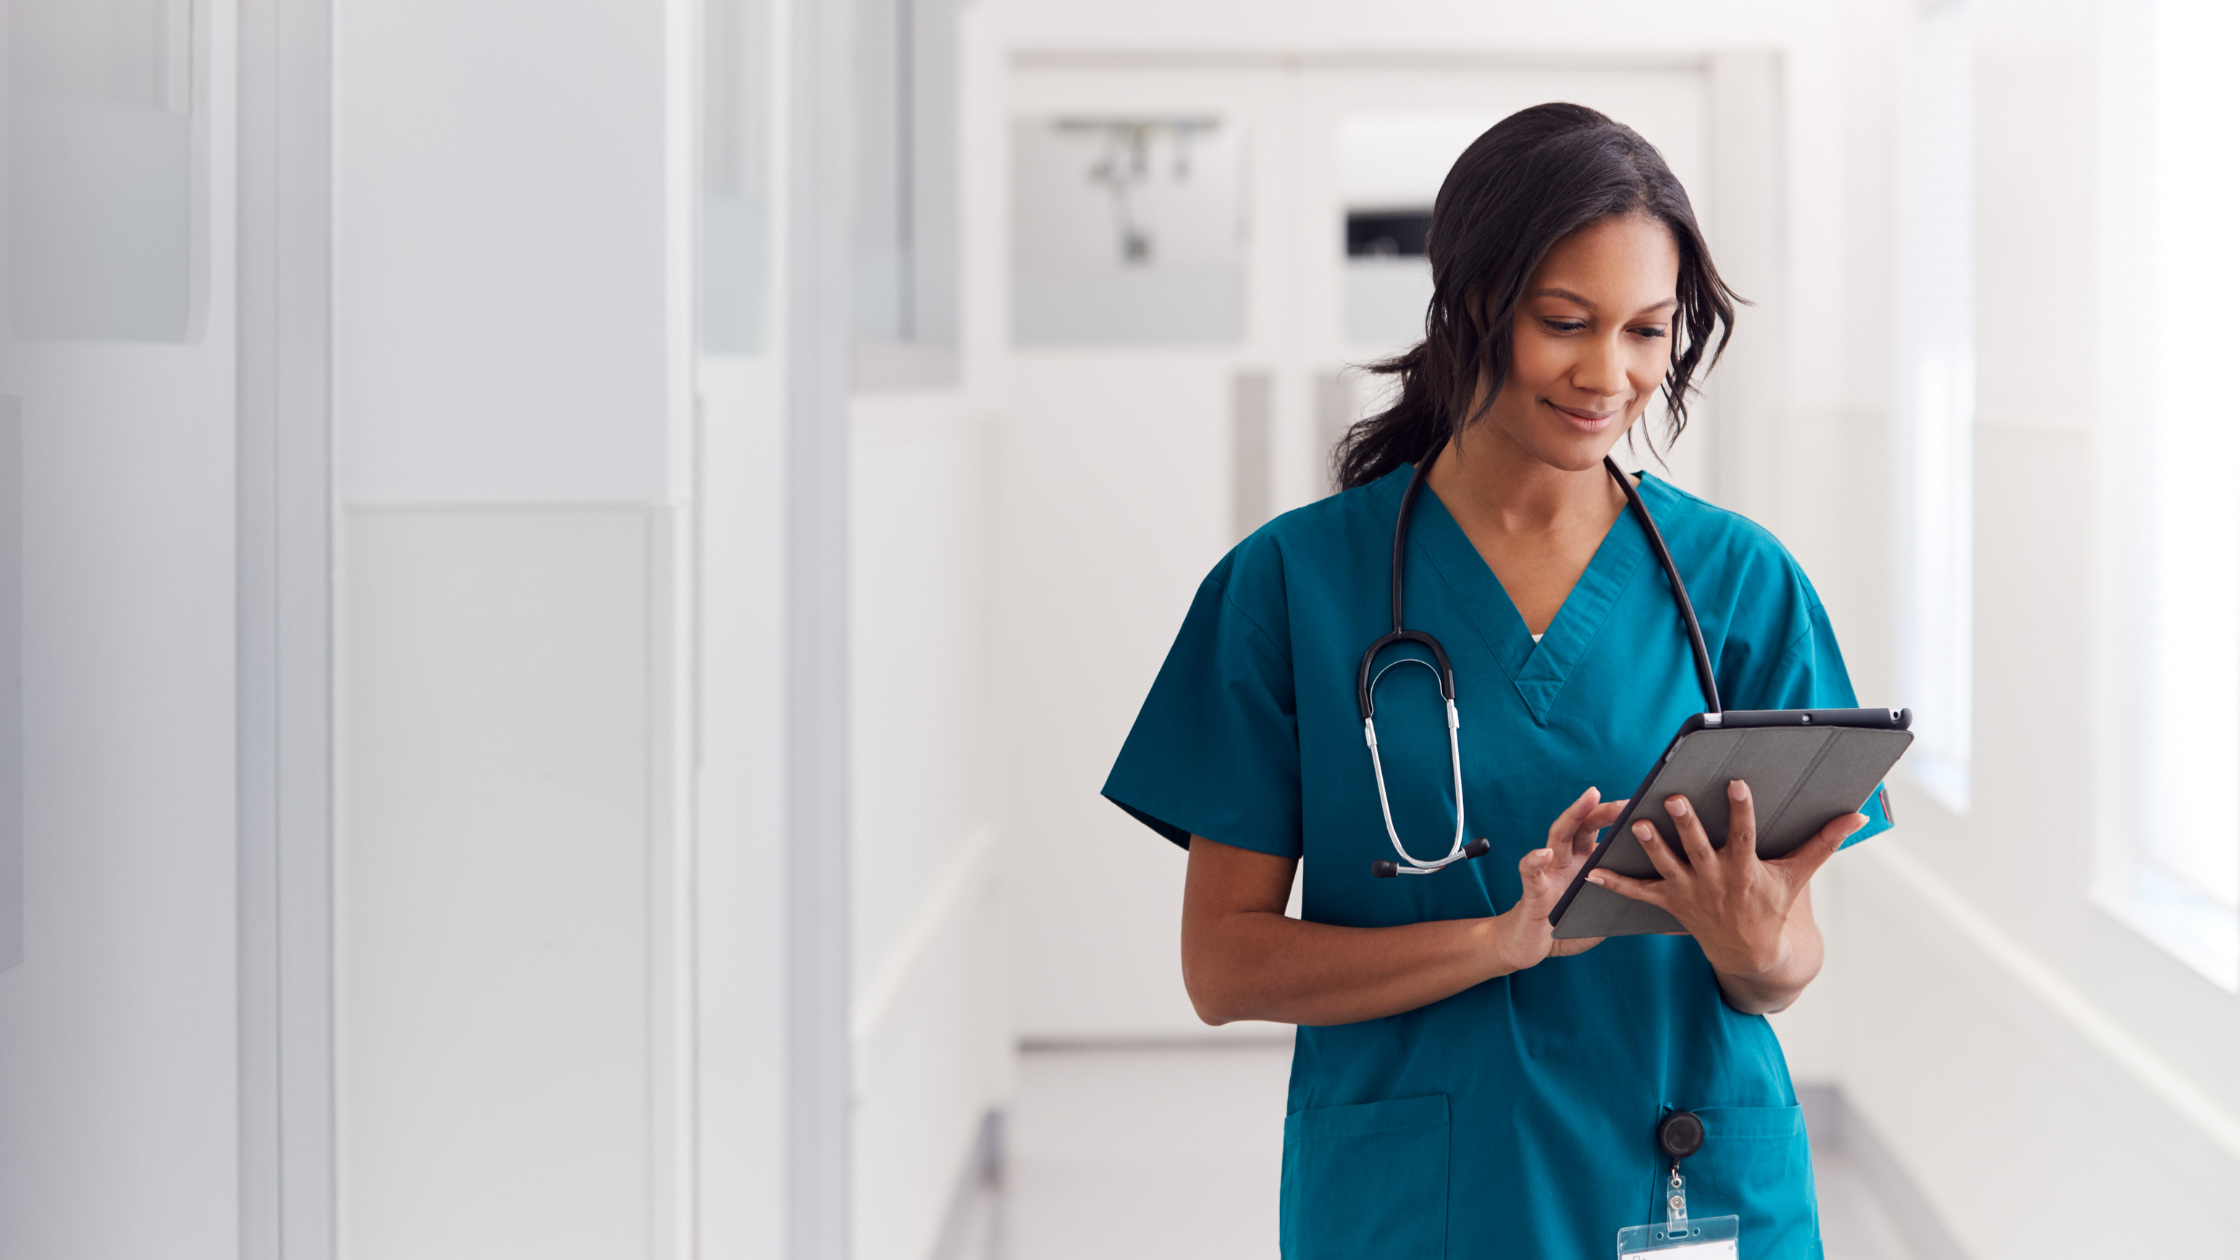 healthcare worker looking at a tablet